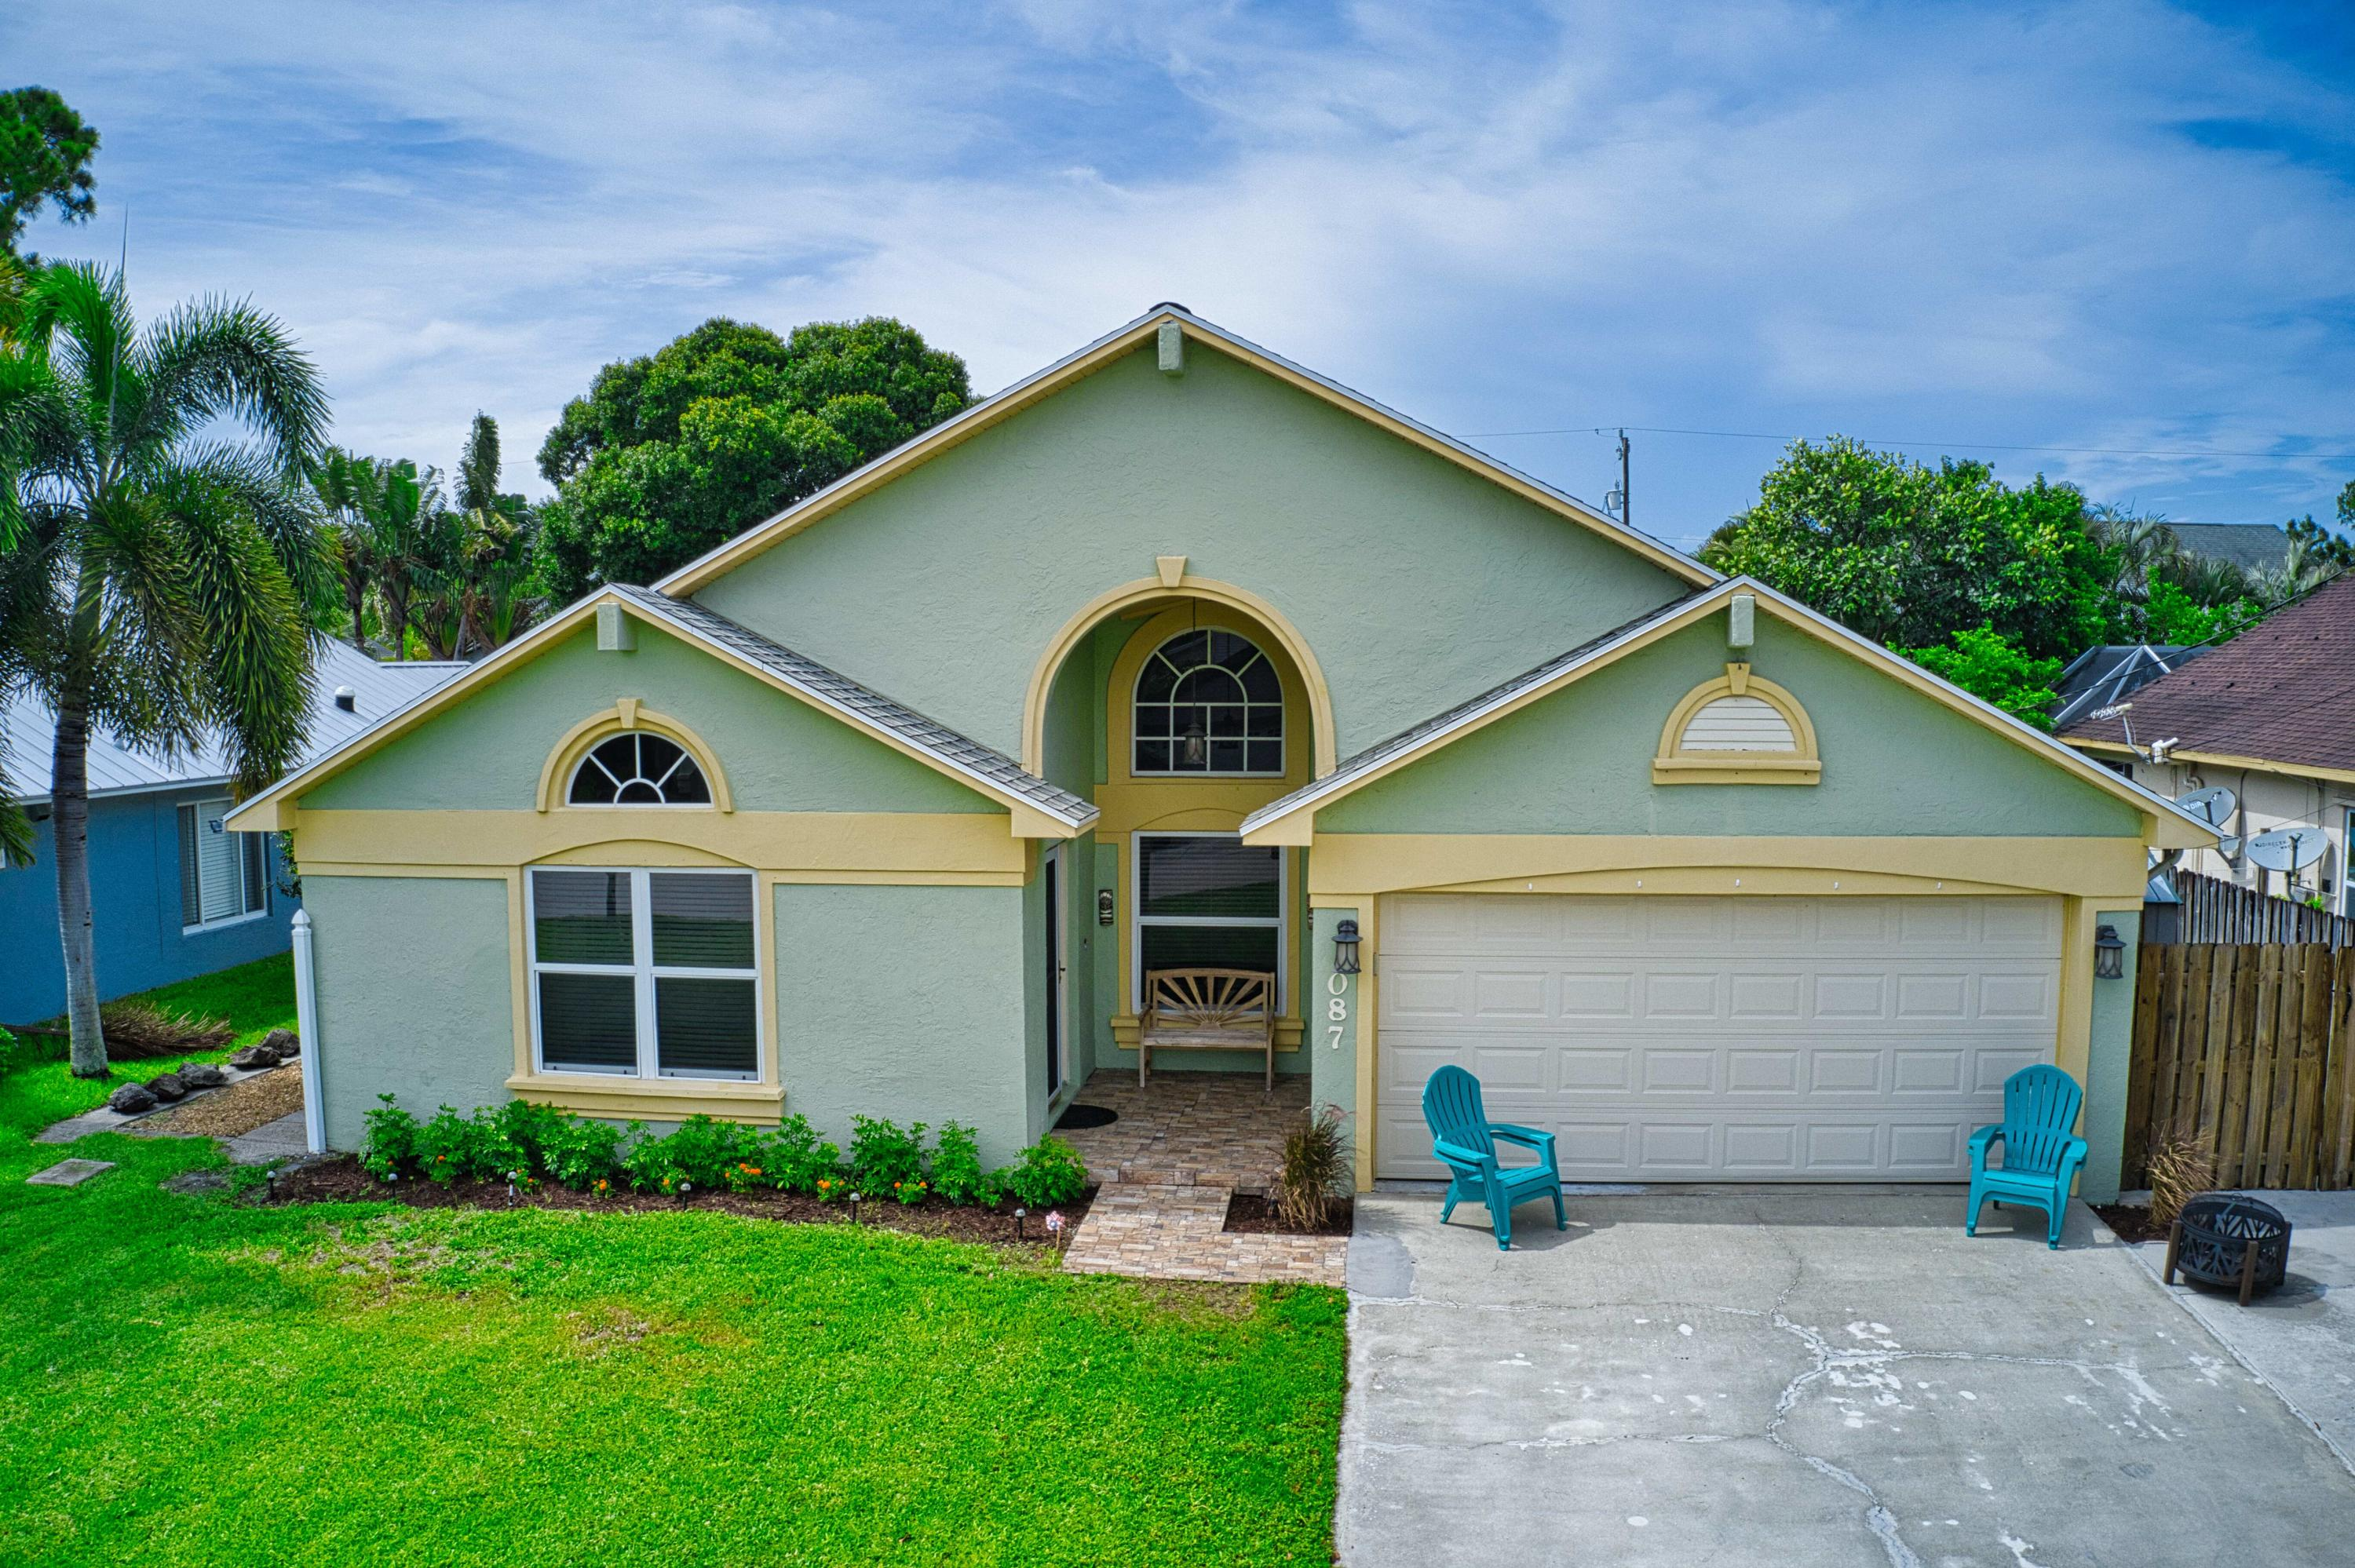 PRISTINE - BEAUTIFUL 3 BEDROOMS 2 FULL BATHS, WITH A LARGE DEN/STUDY, SCREEN ENCLOSED POOL PATIO HOME. SOLID CBS BLOCK CONSTRUCTION WITH HURRICANE IMPACT WINDOWS AND DOORS IN THE ''HEIGHTS OF JUPITER'' A WONDERFUL NO HOA NEIGHBORHOOD. Easily convert the Den/Study into a 4th Bedroom. Spacious 2 Car Garage. Excellent Location, with Easy Access to Donald Ross Road and I-95 within minutes. Beautiful Jupiter and Juno Beach in minutes. Excellent A Rated School District: Lighthouse Elementary, Independence Middle School, WilliamT. Dwyer High School. Easy Commute to Palm Beach Airport.